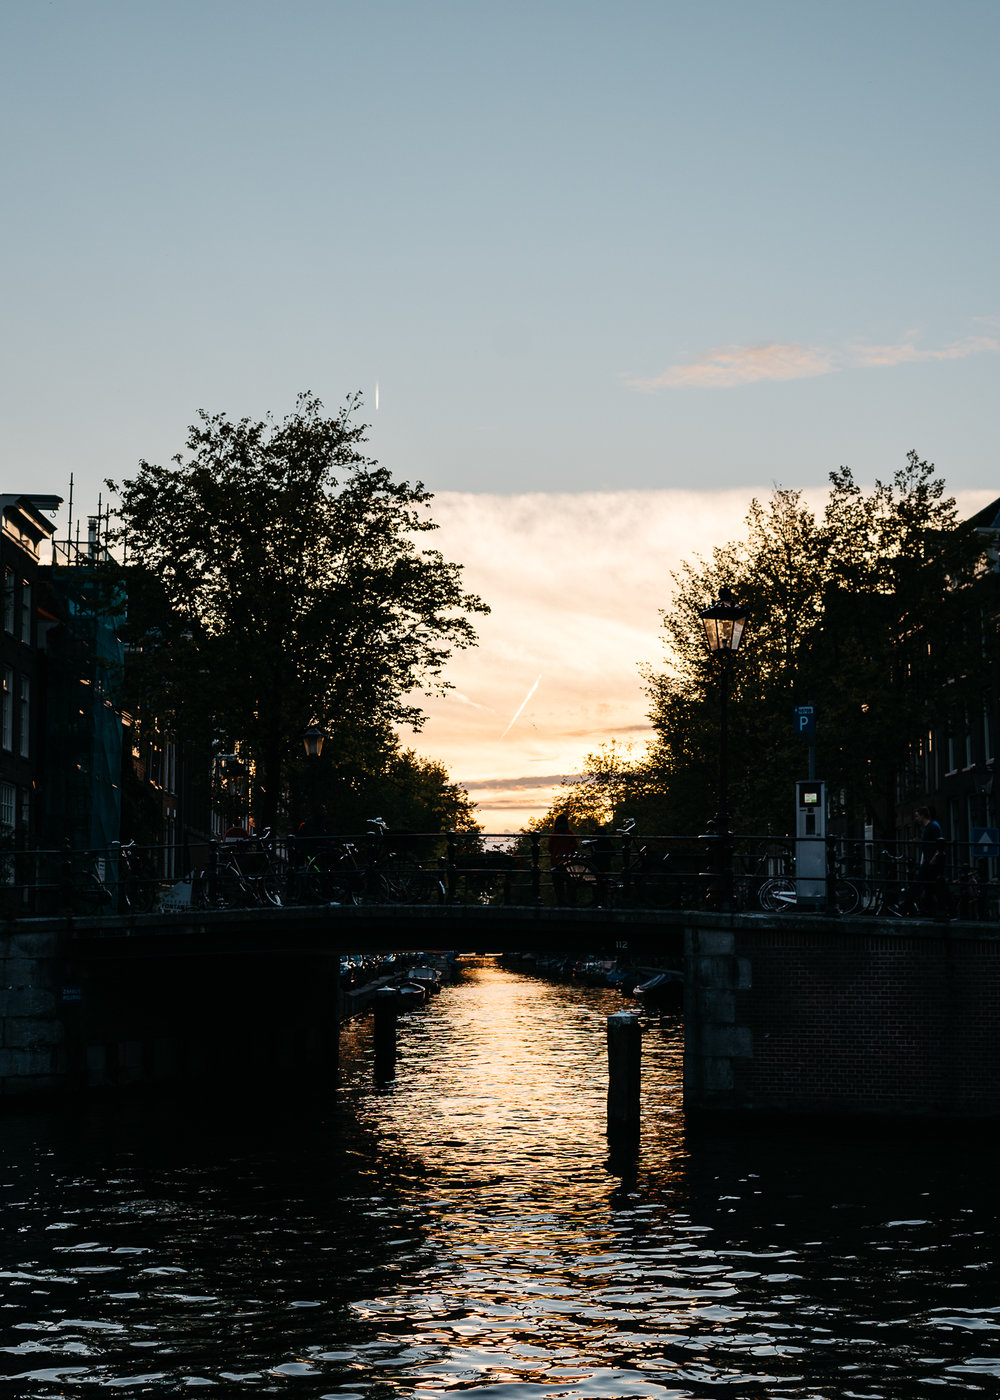 Sun setting over the canals